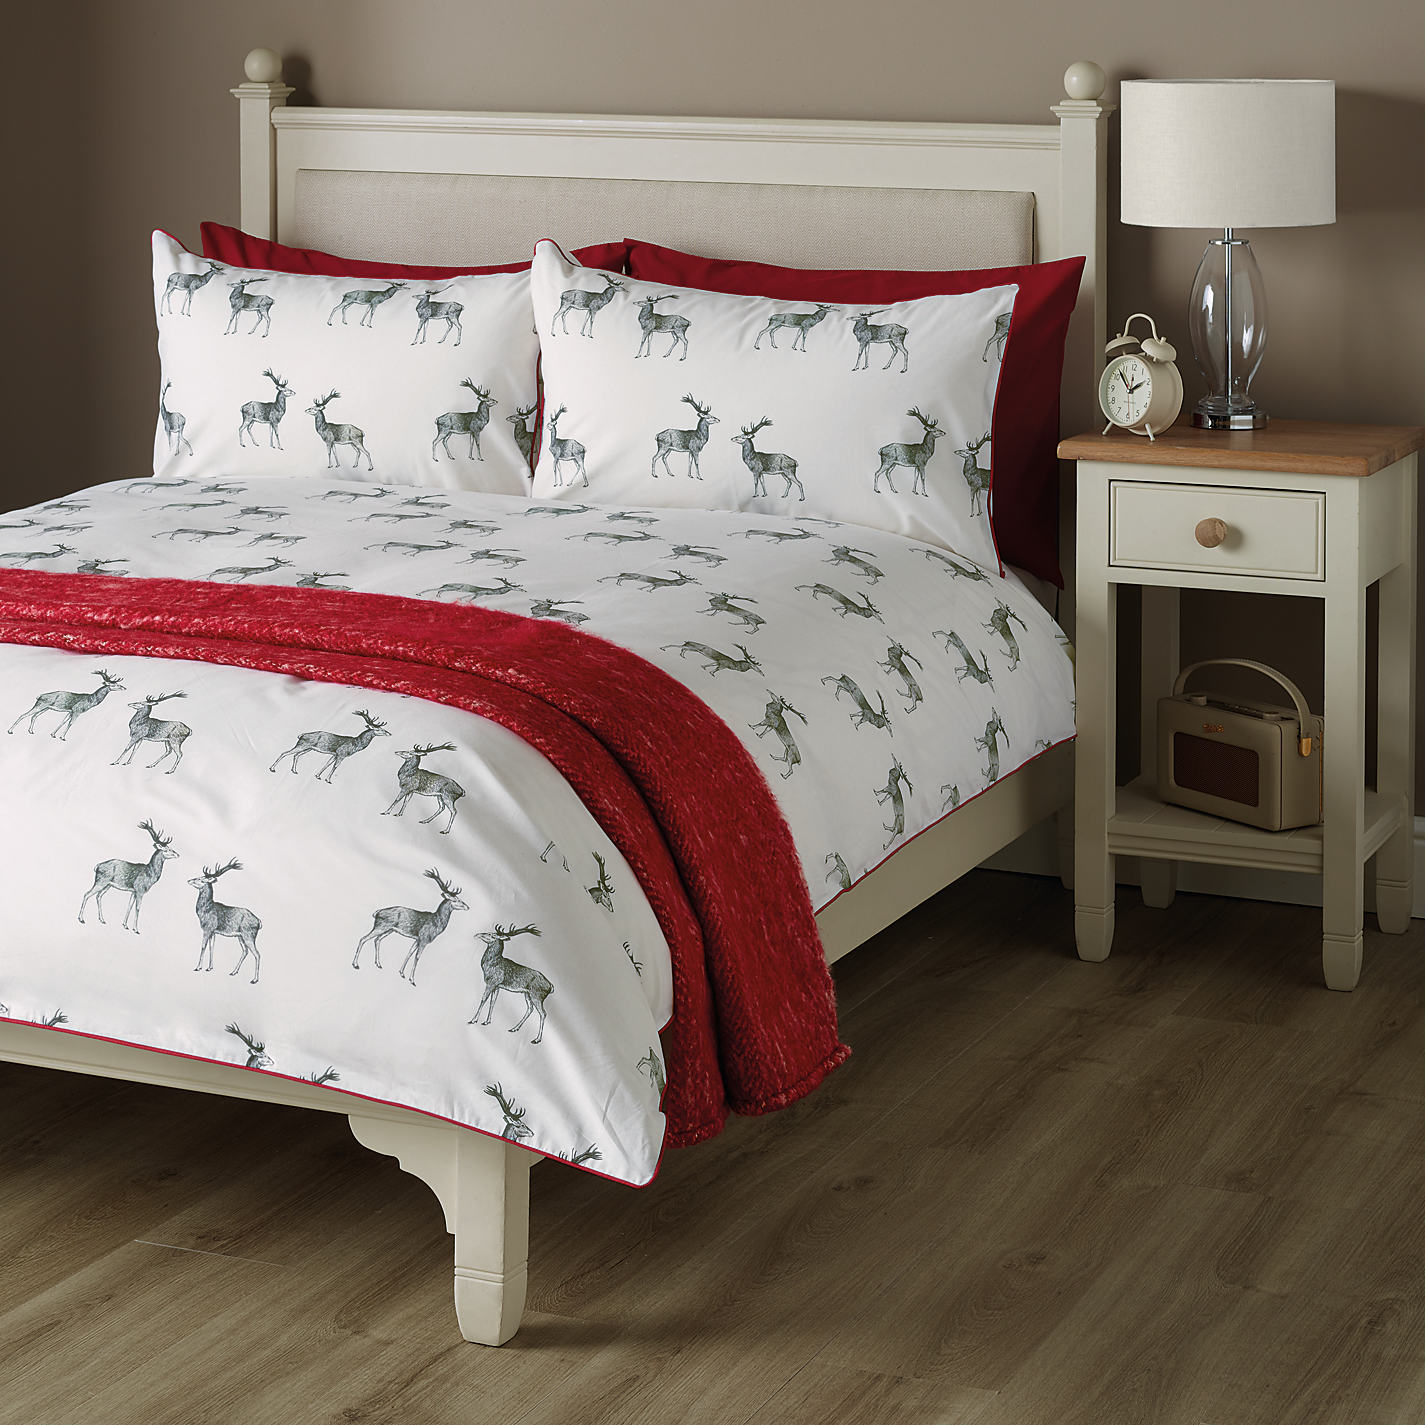 John Lewis Stag Print Duvet Cover And Pillowcase Set Online At Johnlewis